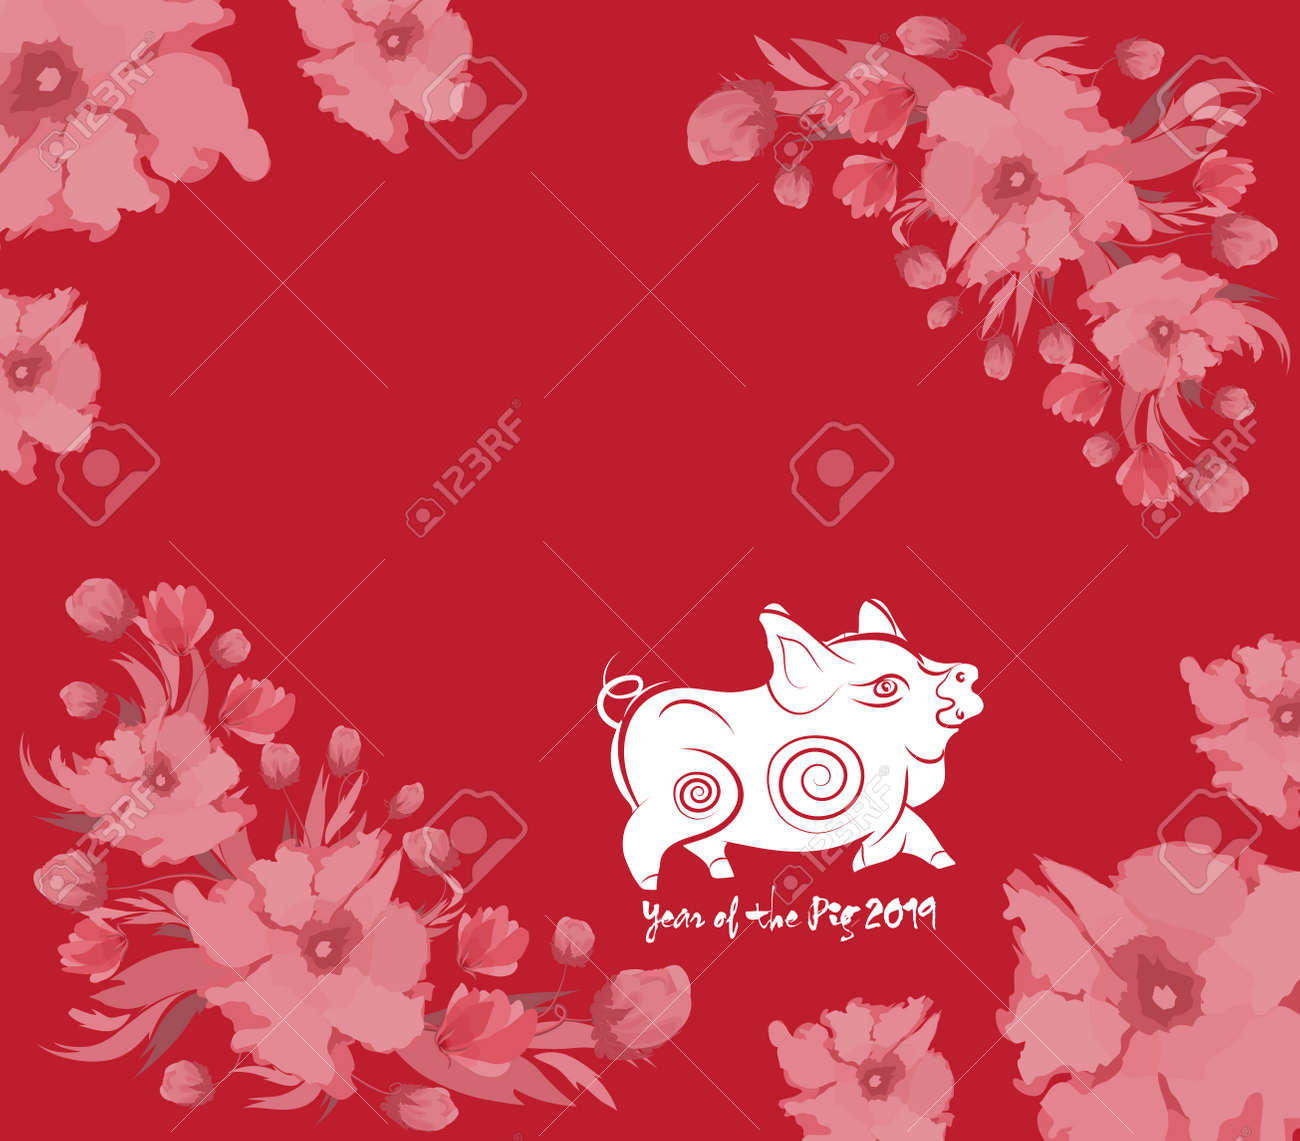 Oriental Happy Chinese New Year 2019 With Cake And Blossom Year Royalty Free Cliparts Vectors And Stock Illustration Image 102652783